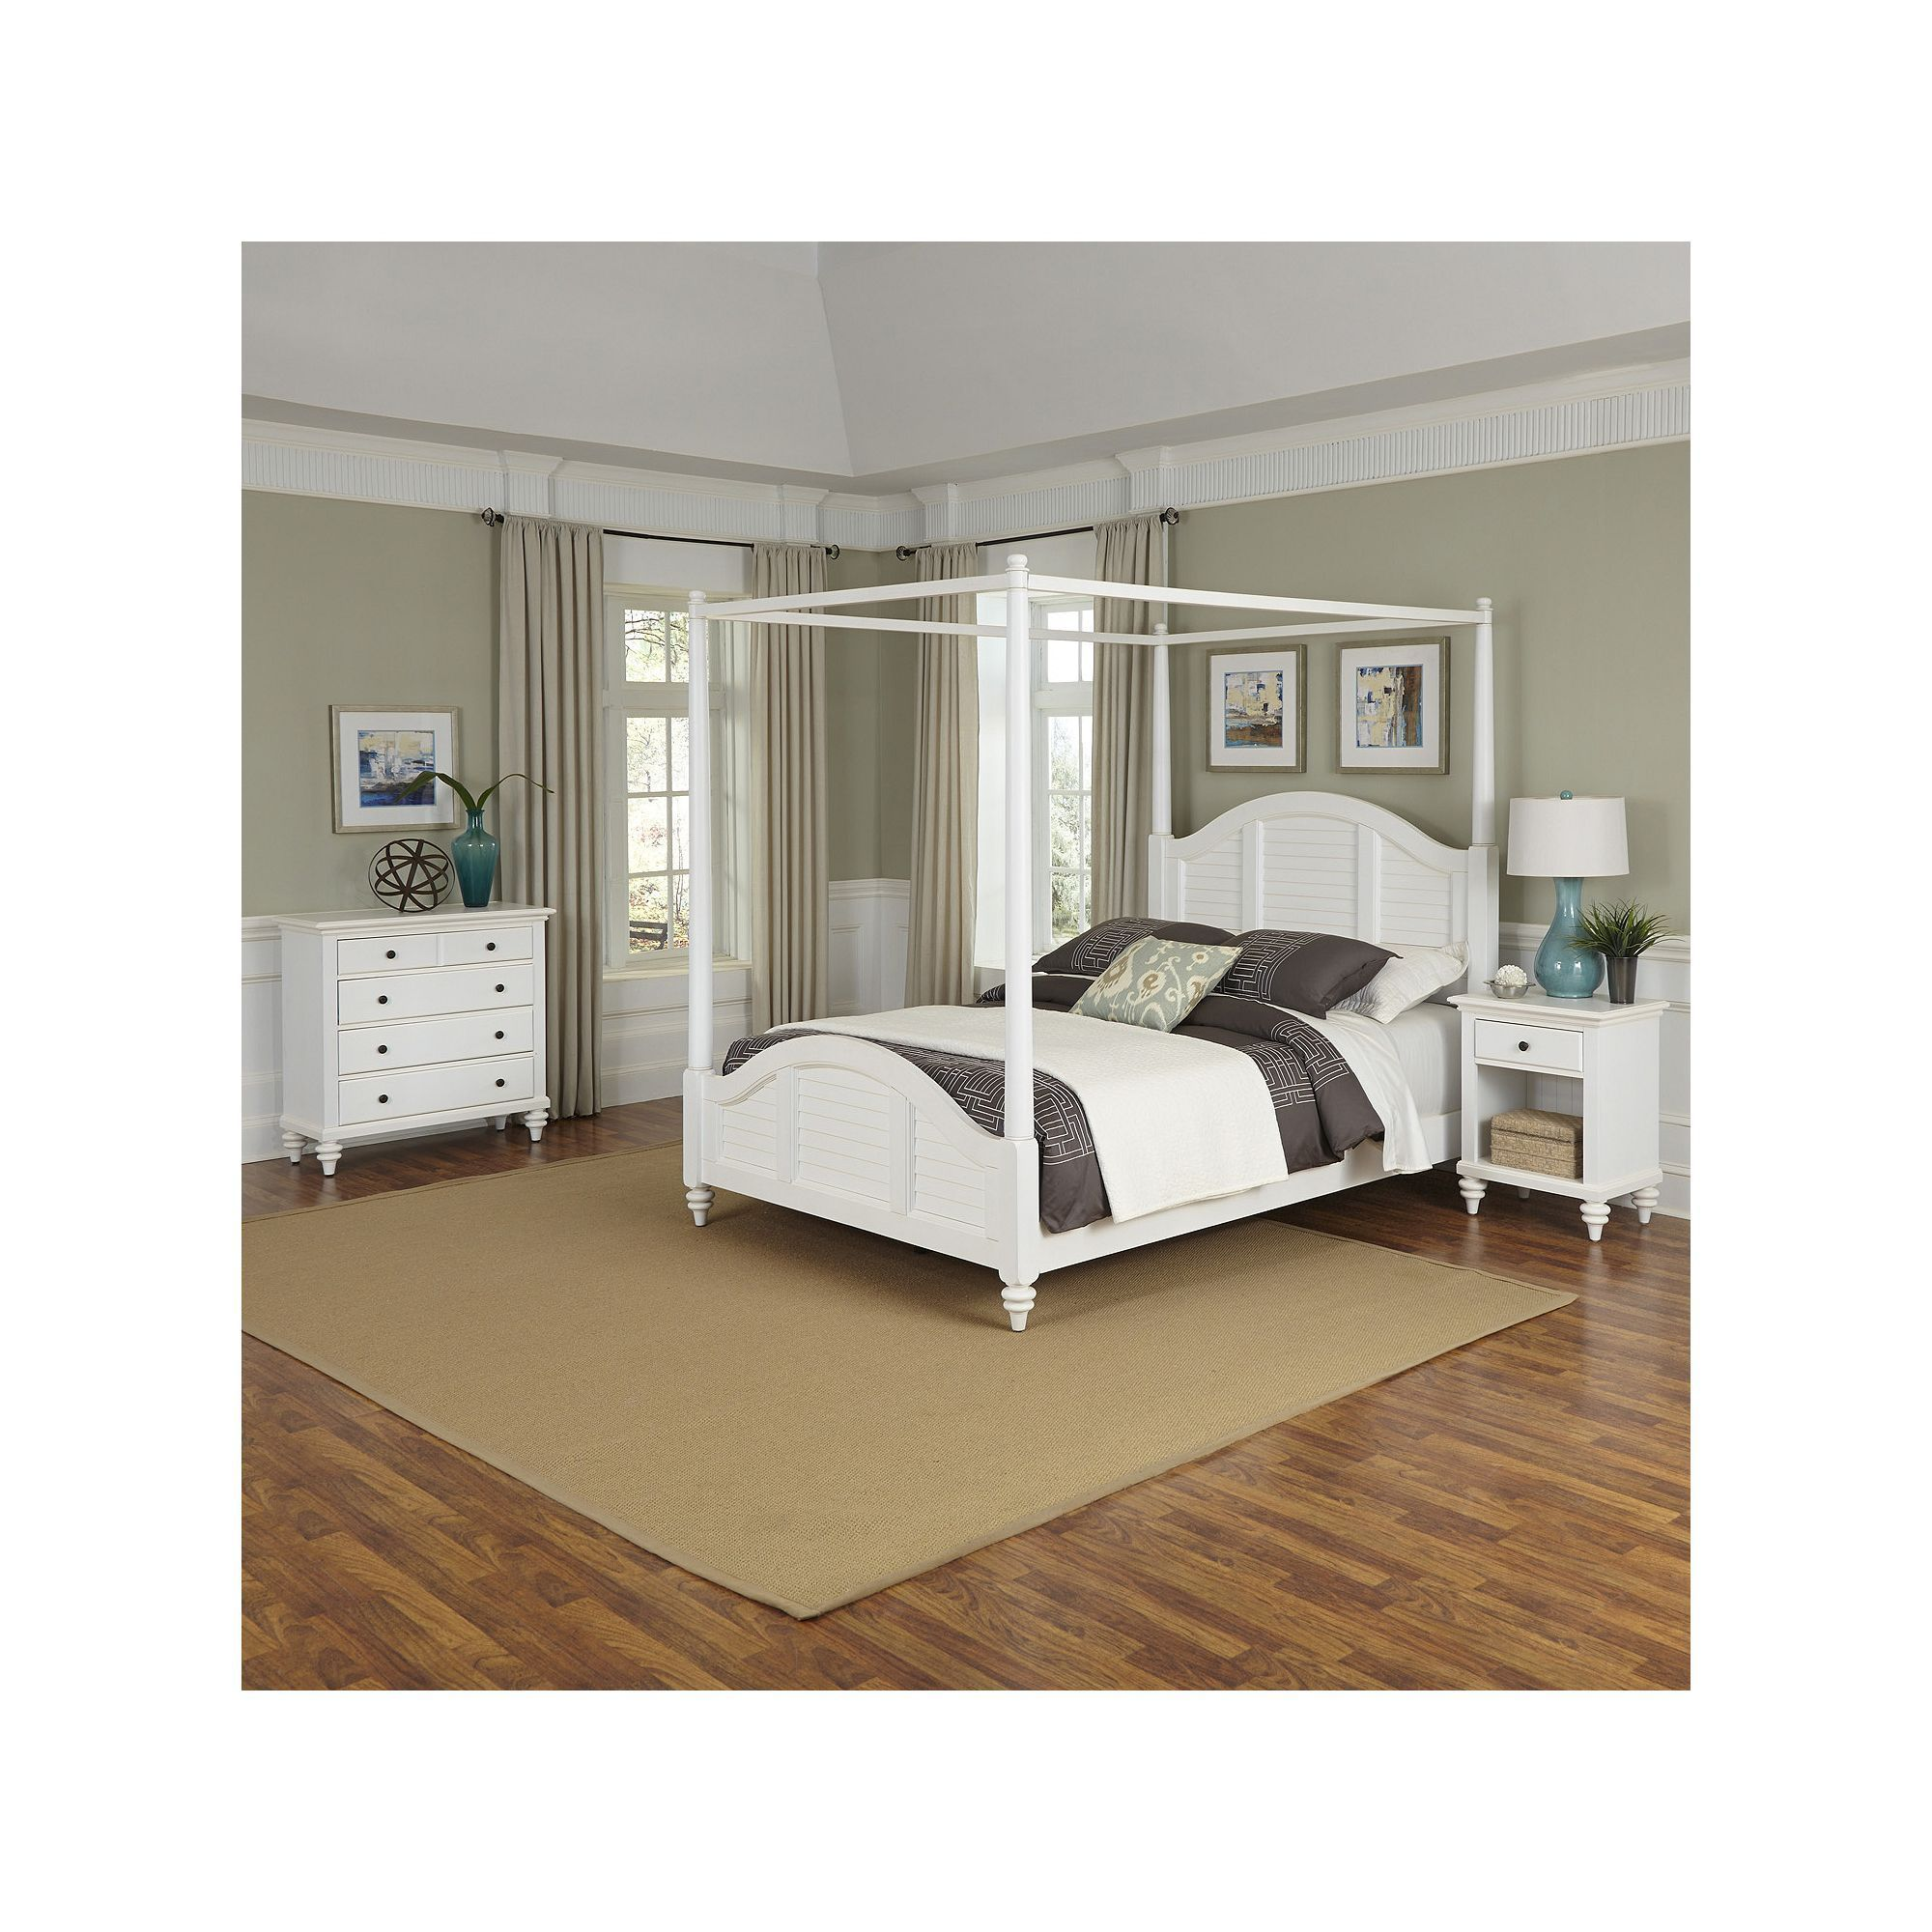 Home Styles 3 Piece Bermuda Canopy Bedroom Set, White